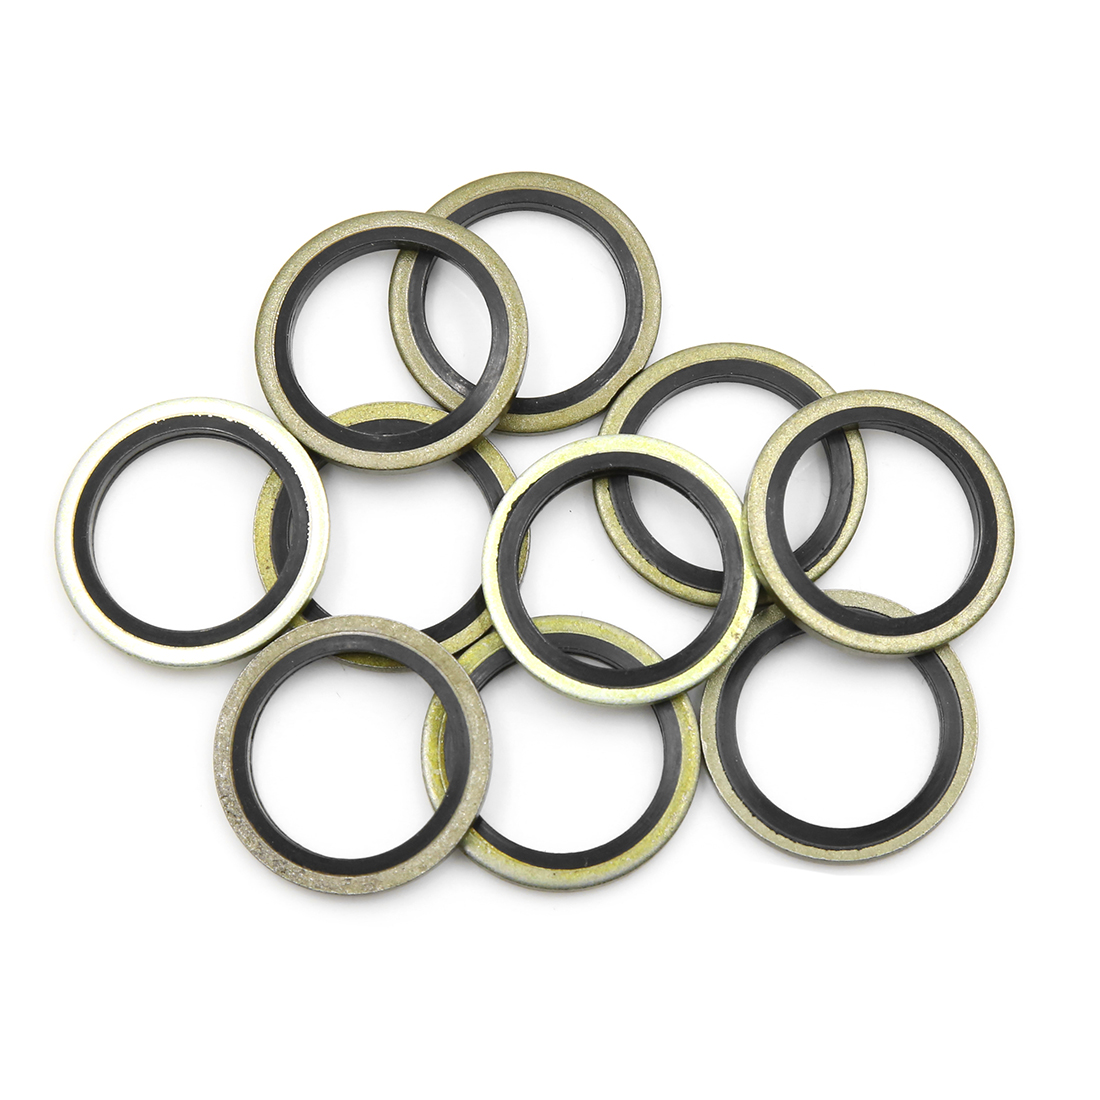 10pcs Engine Oil Crush Washers Drain Plug Gaskets 20mm ID. 28mm OD. for Car - image 2 of 2